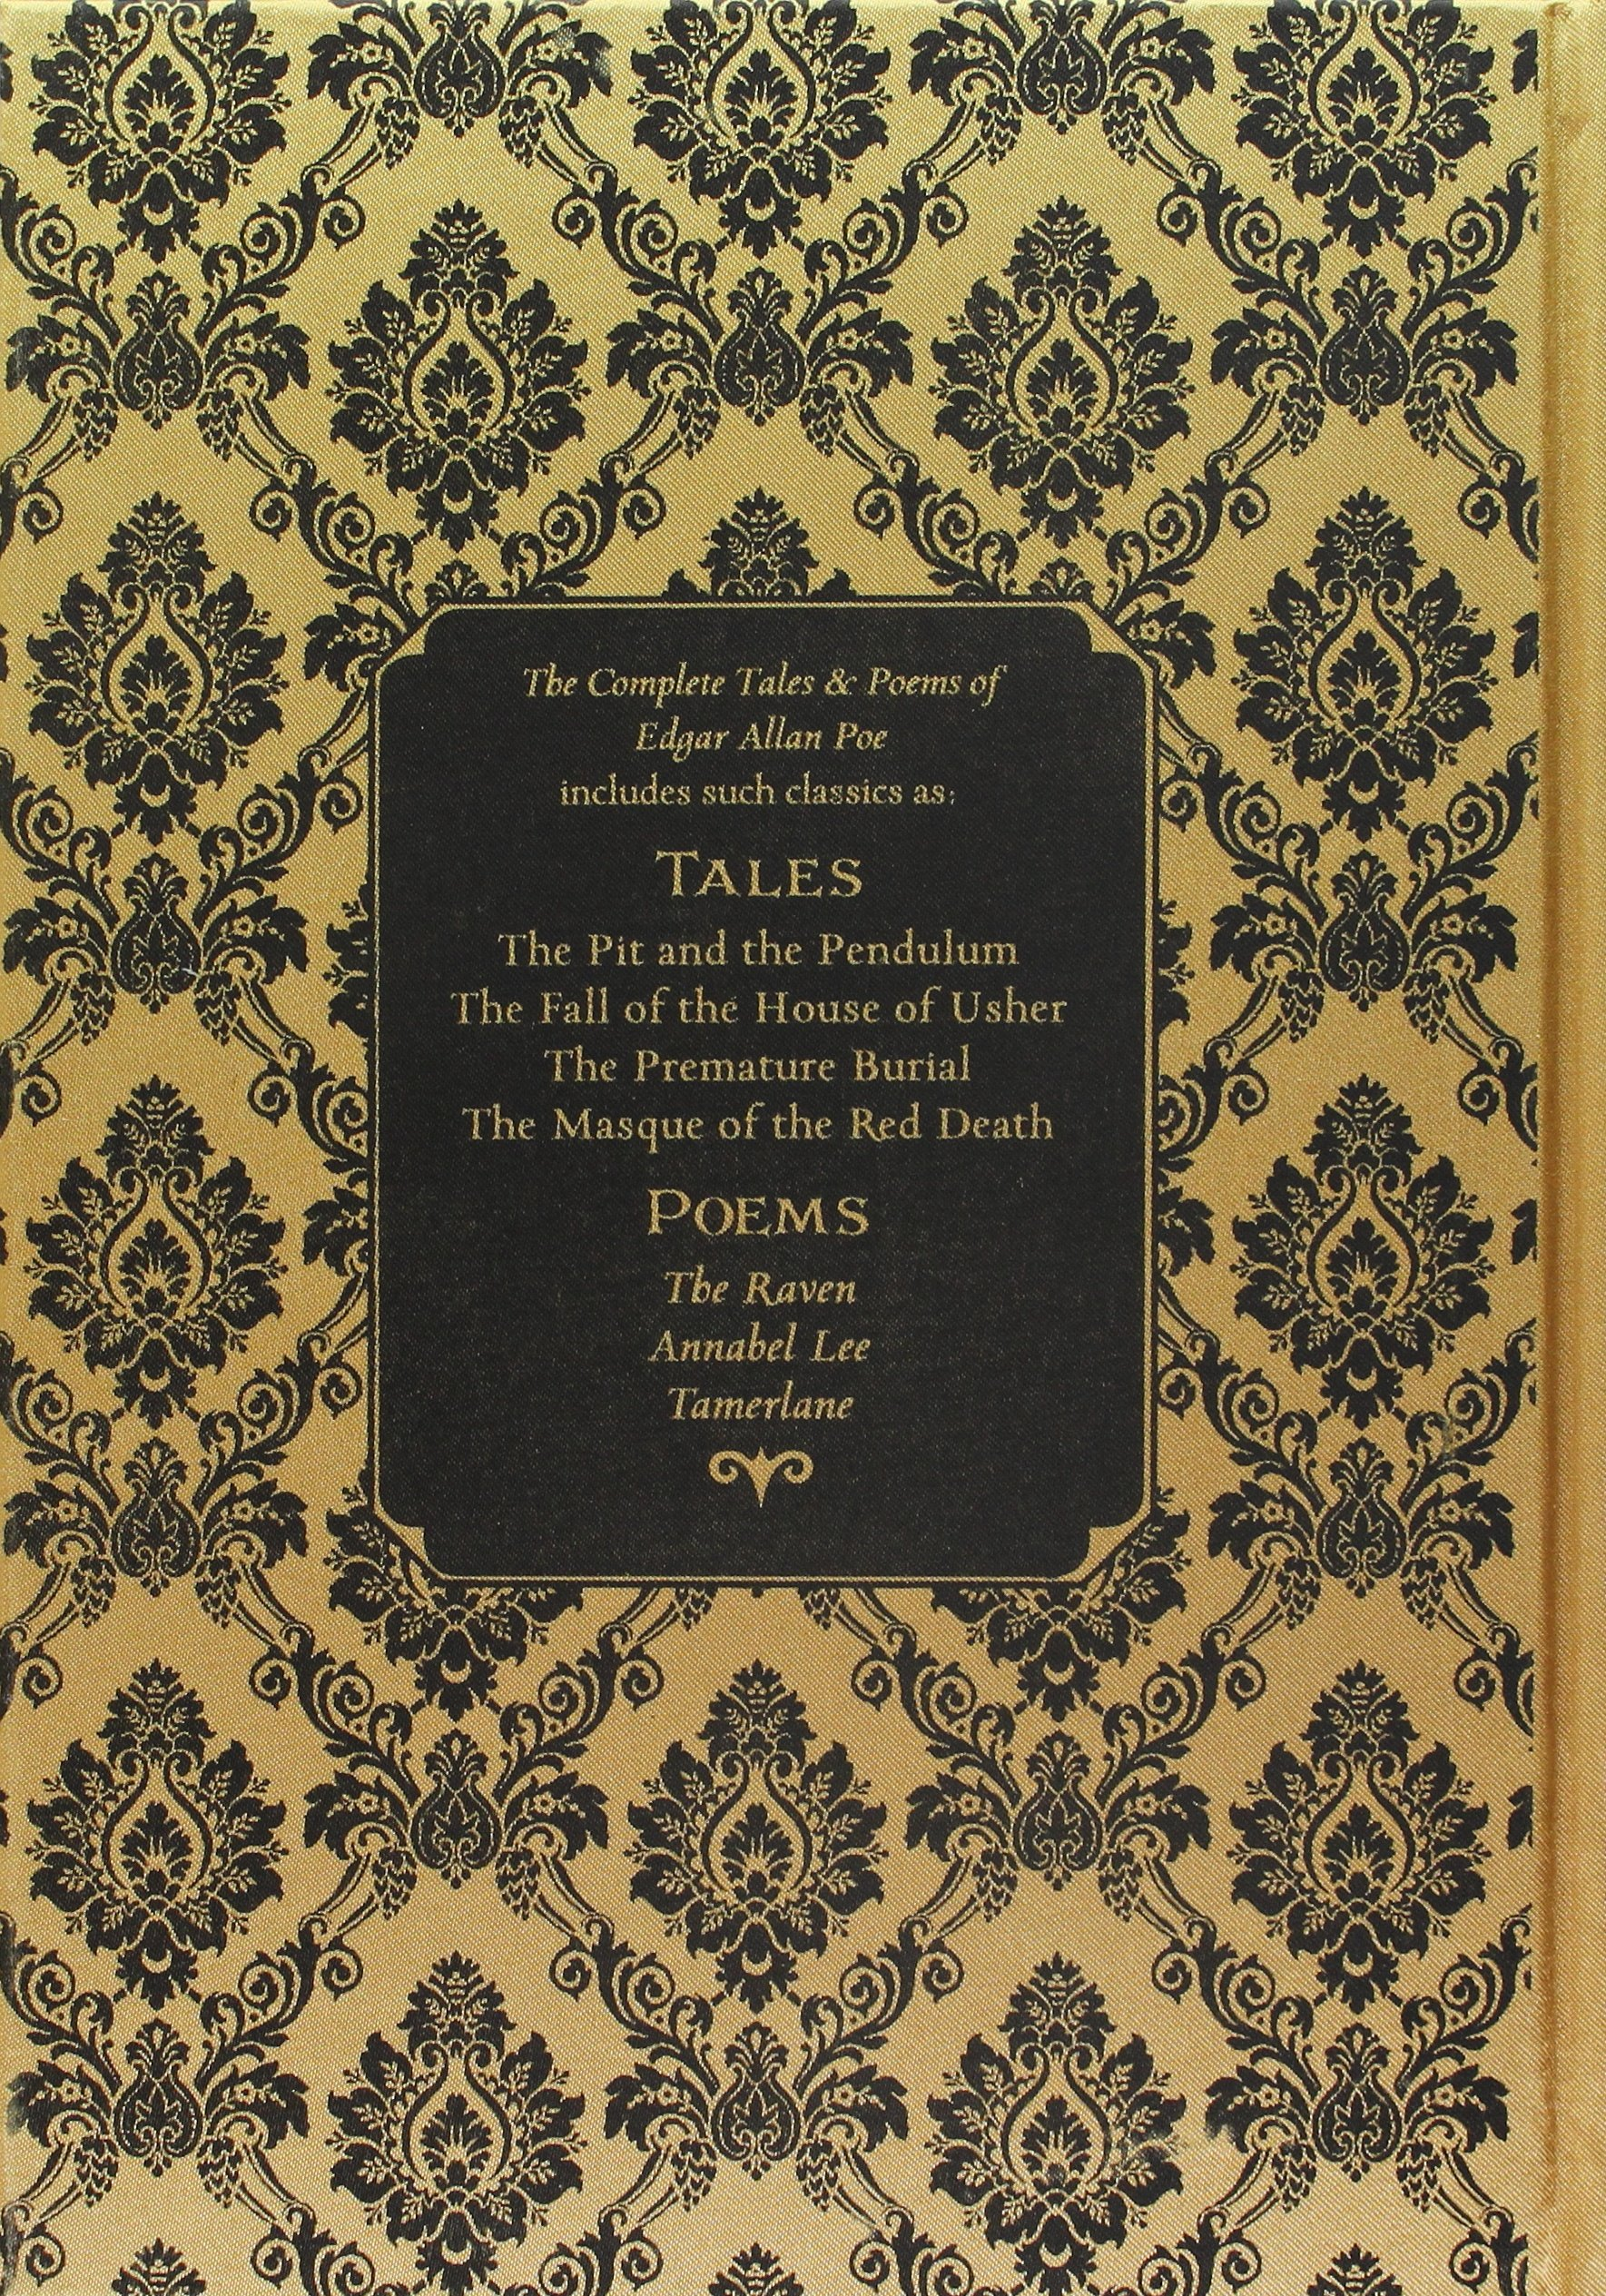 the complete tales poems of edgar allan poe co uk edgar the complete tales poems of edgar allan poe co uk edgar allan poe 9781937994433 books